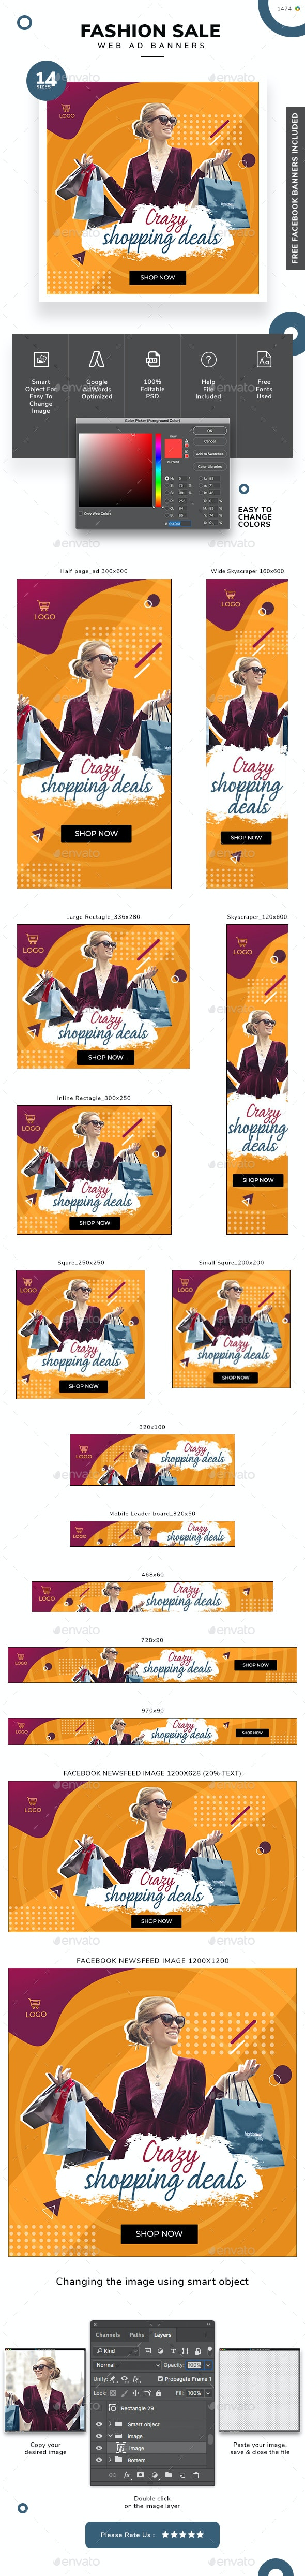 Fashion Sale Web Banner Set - Banners & Ads Web Elements